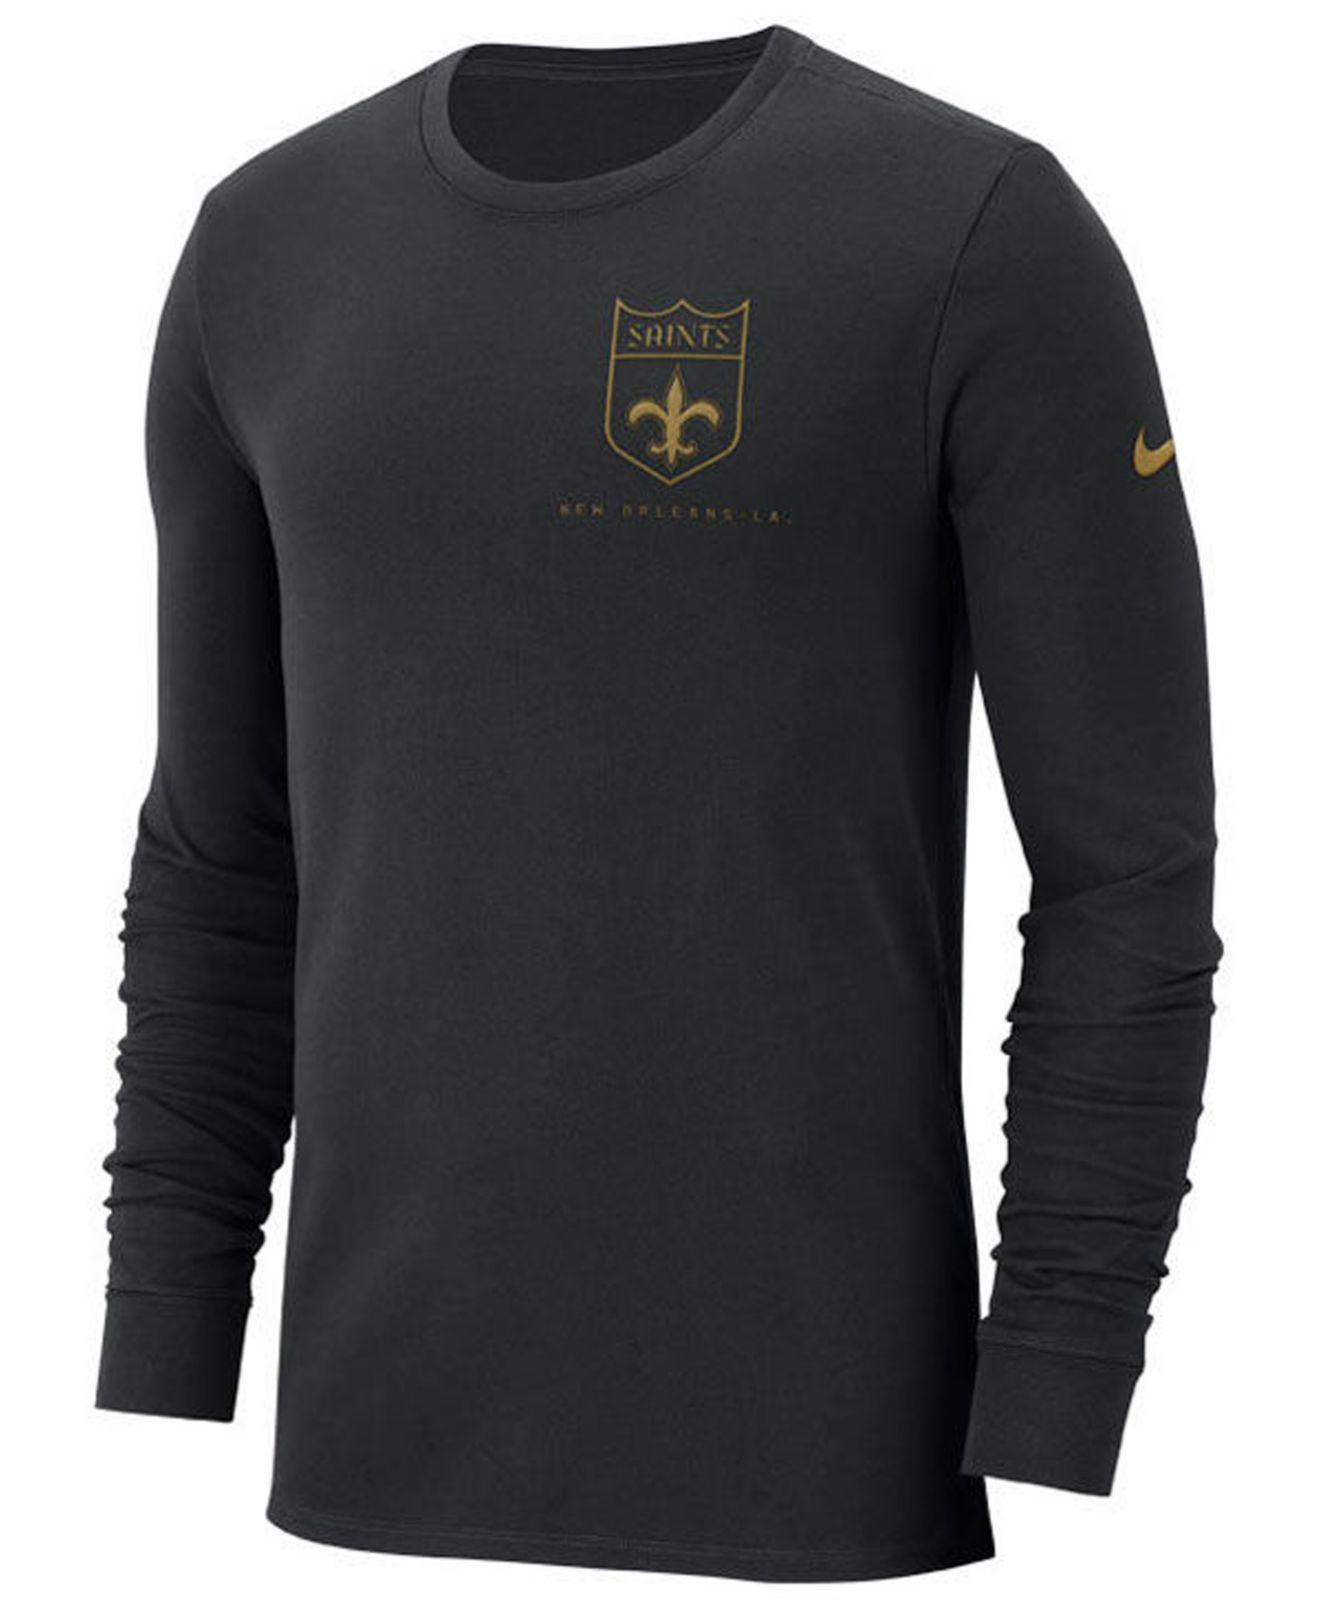 9424a504def Lyst - Nike New Orleans Saints Heavyweight Seal Long Sleeve T-shirt ...